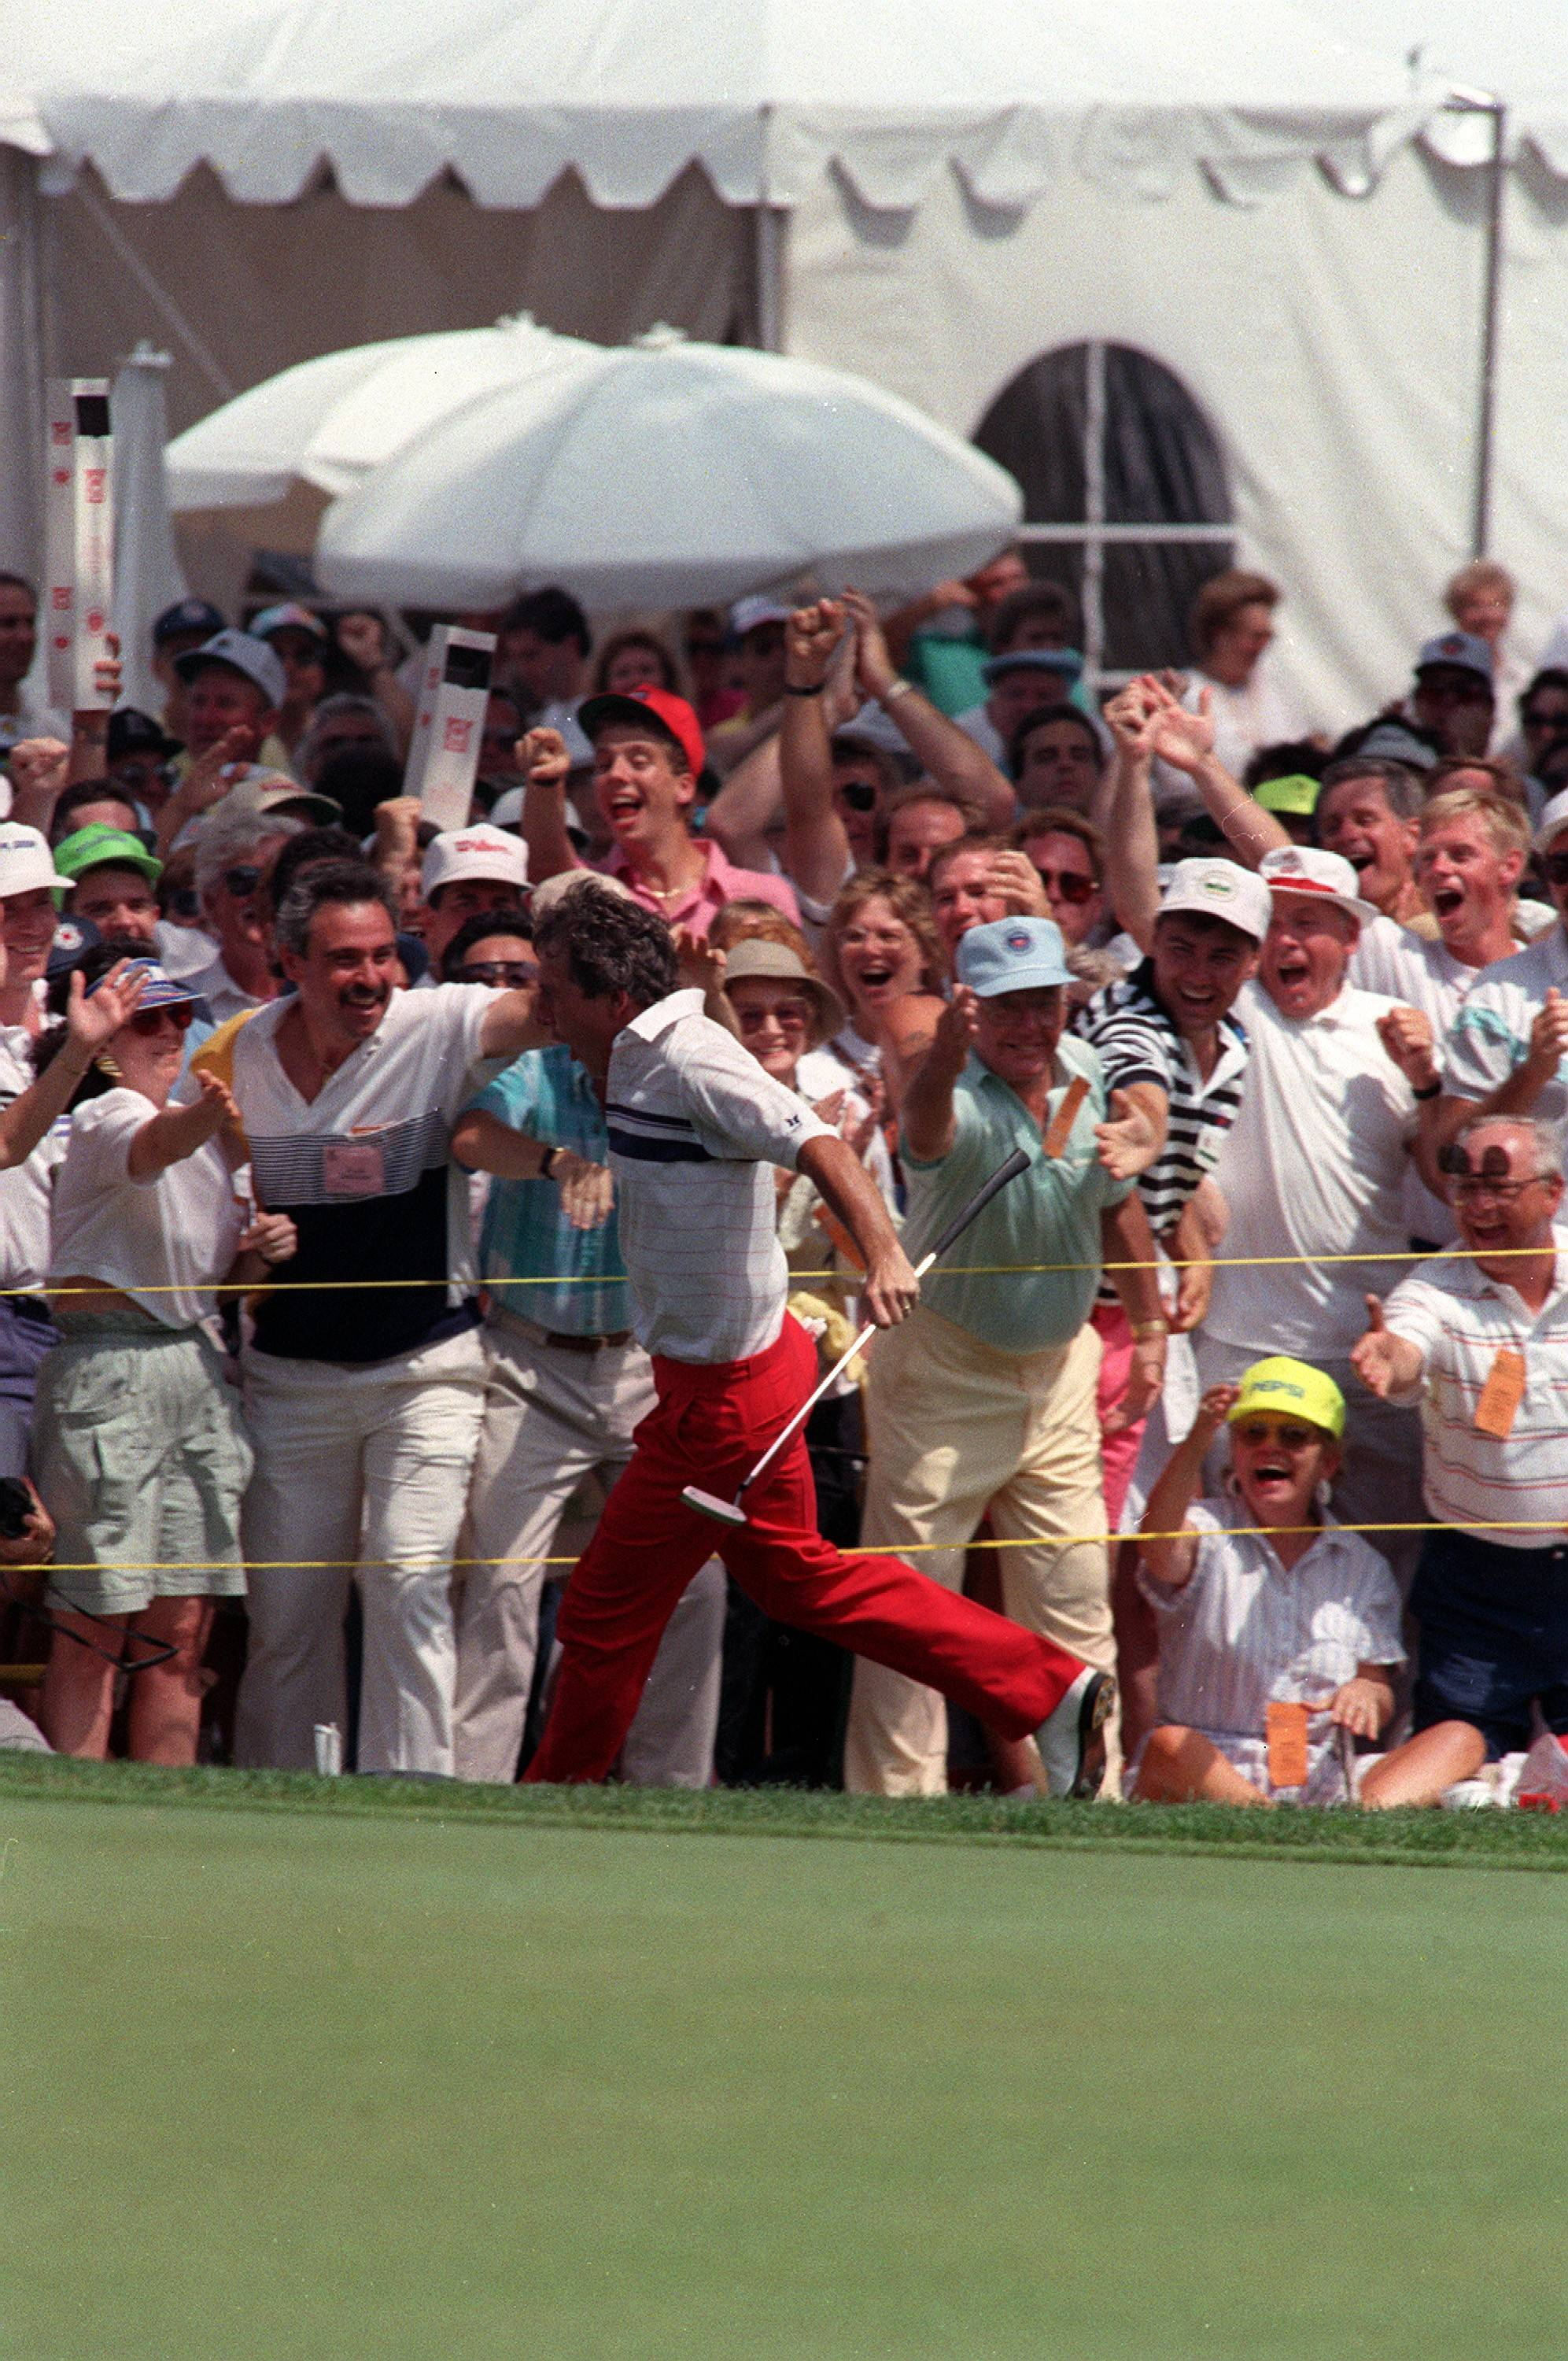 Two time U.S. Open winner Hale Irwin gets a round of high-fives from the fans surrounding the 18th green after sinking a 60-foot putt during the U.S. Open at Medinah Country Club in Medinah, Ill., Sunday, June 17, 1990. The play put Irwin in the clubhouse at 8-under for the tournament. Irwin won the championship in playoffs with a score of 280.